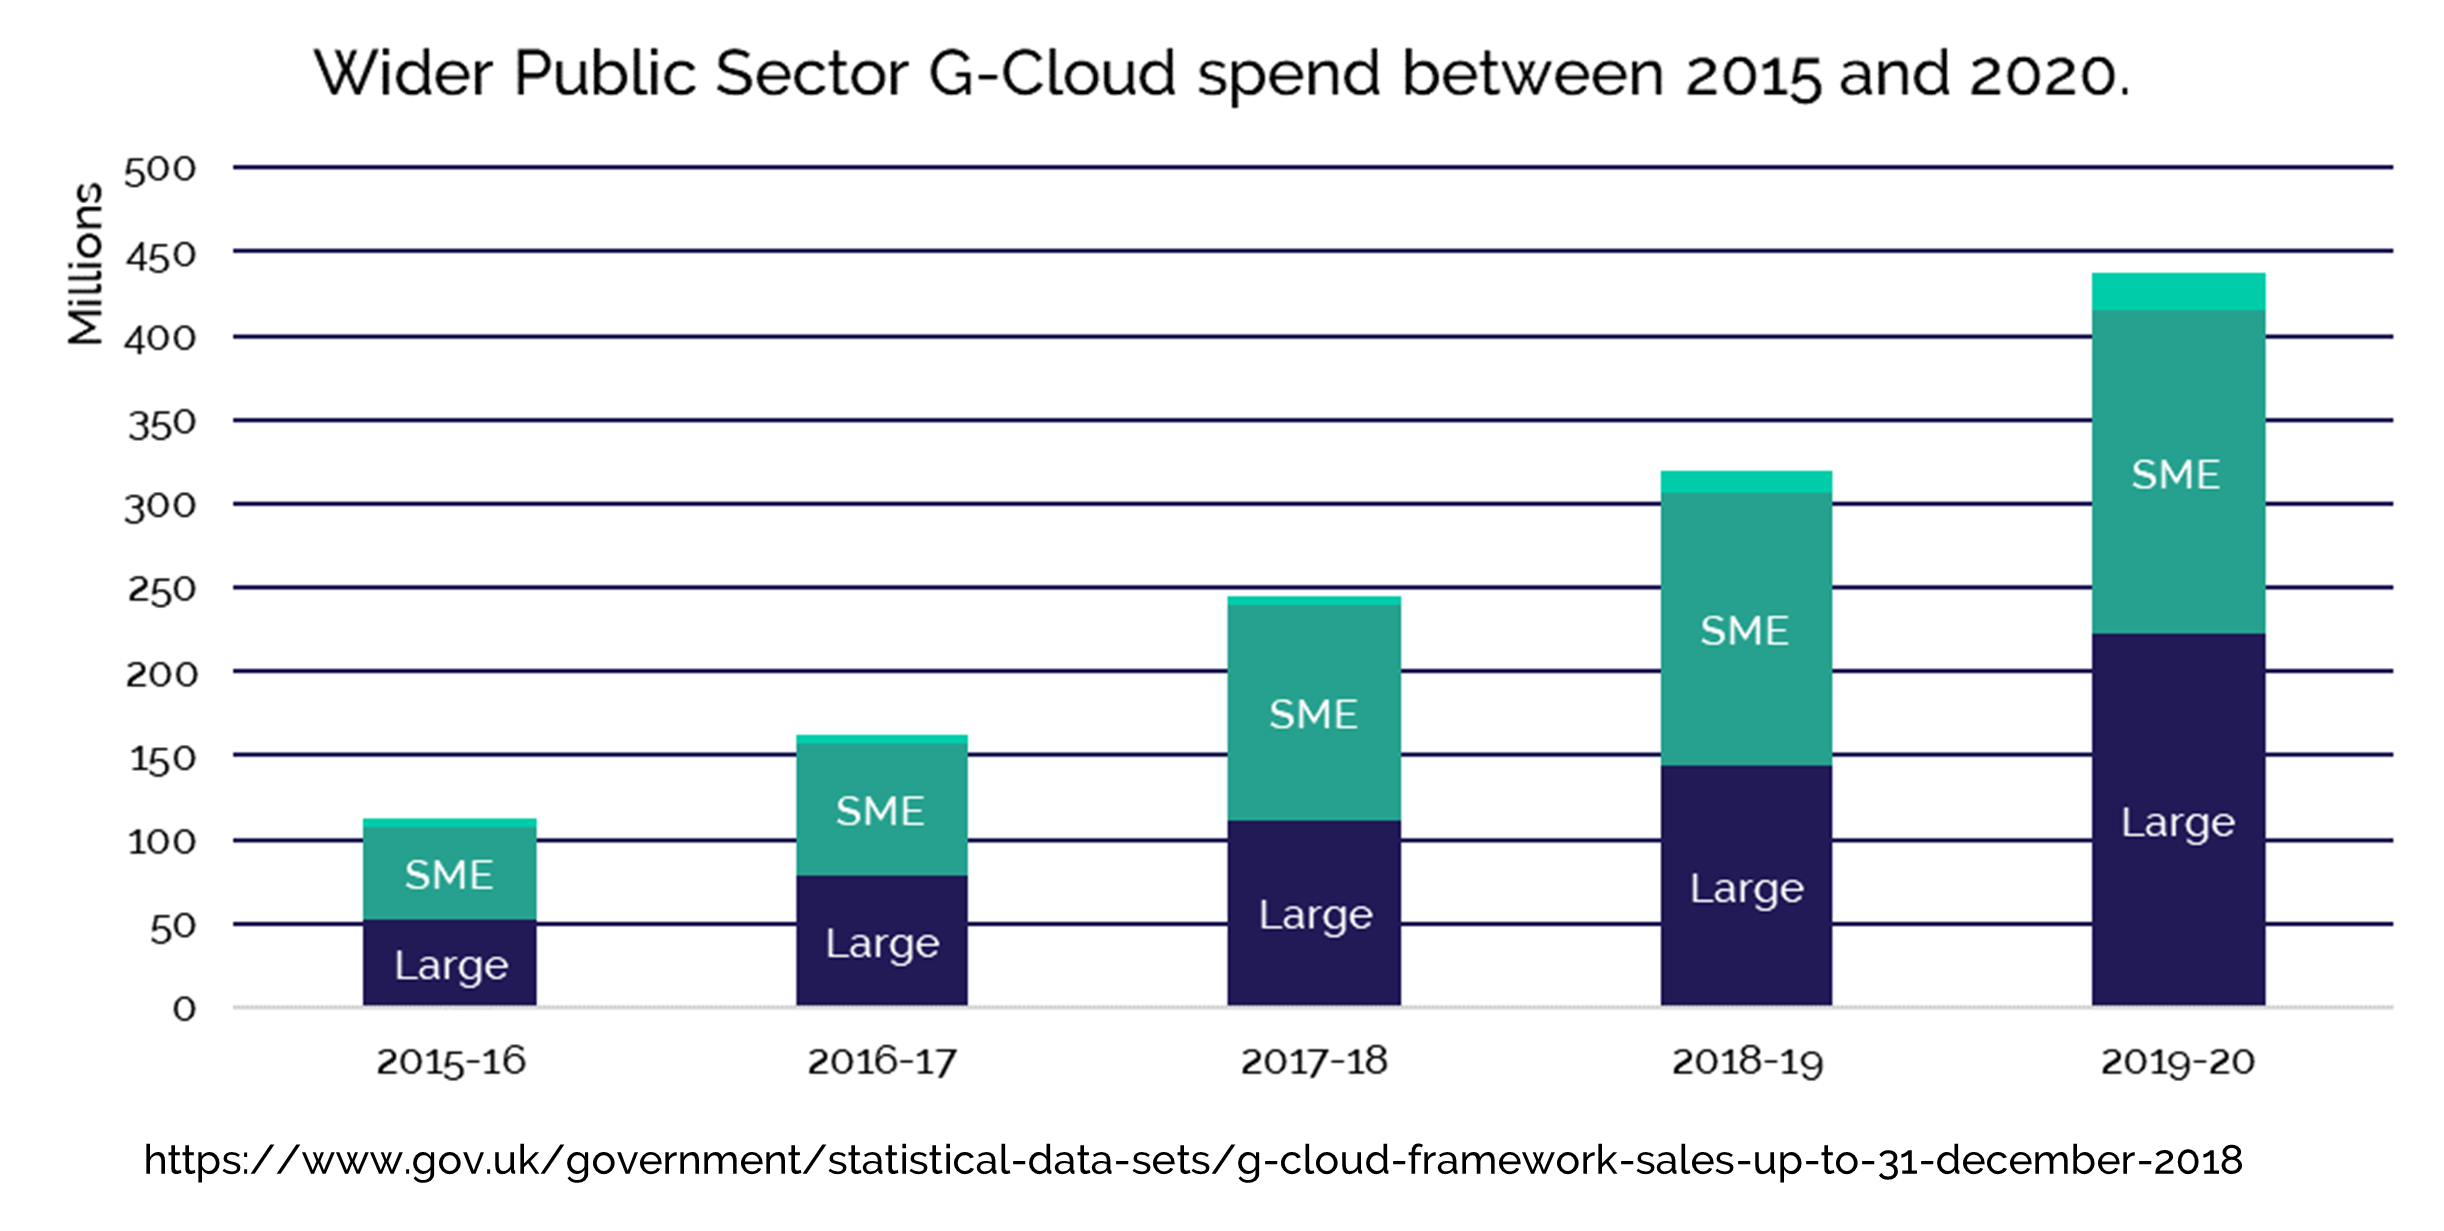 Public sector (not including Central Government departments) G-Cloud spend between 2015 and 2020.